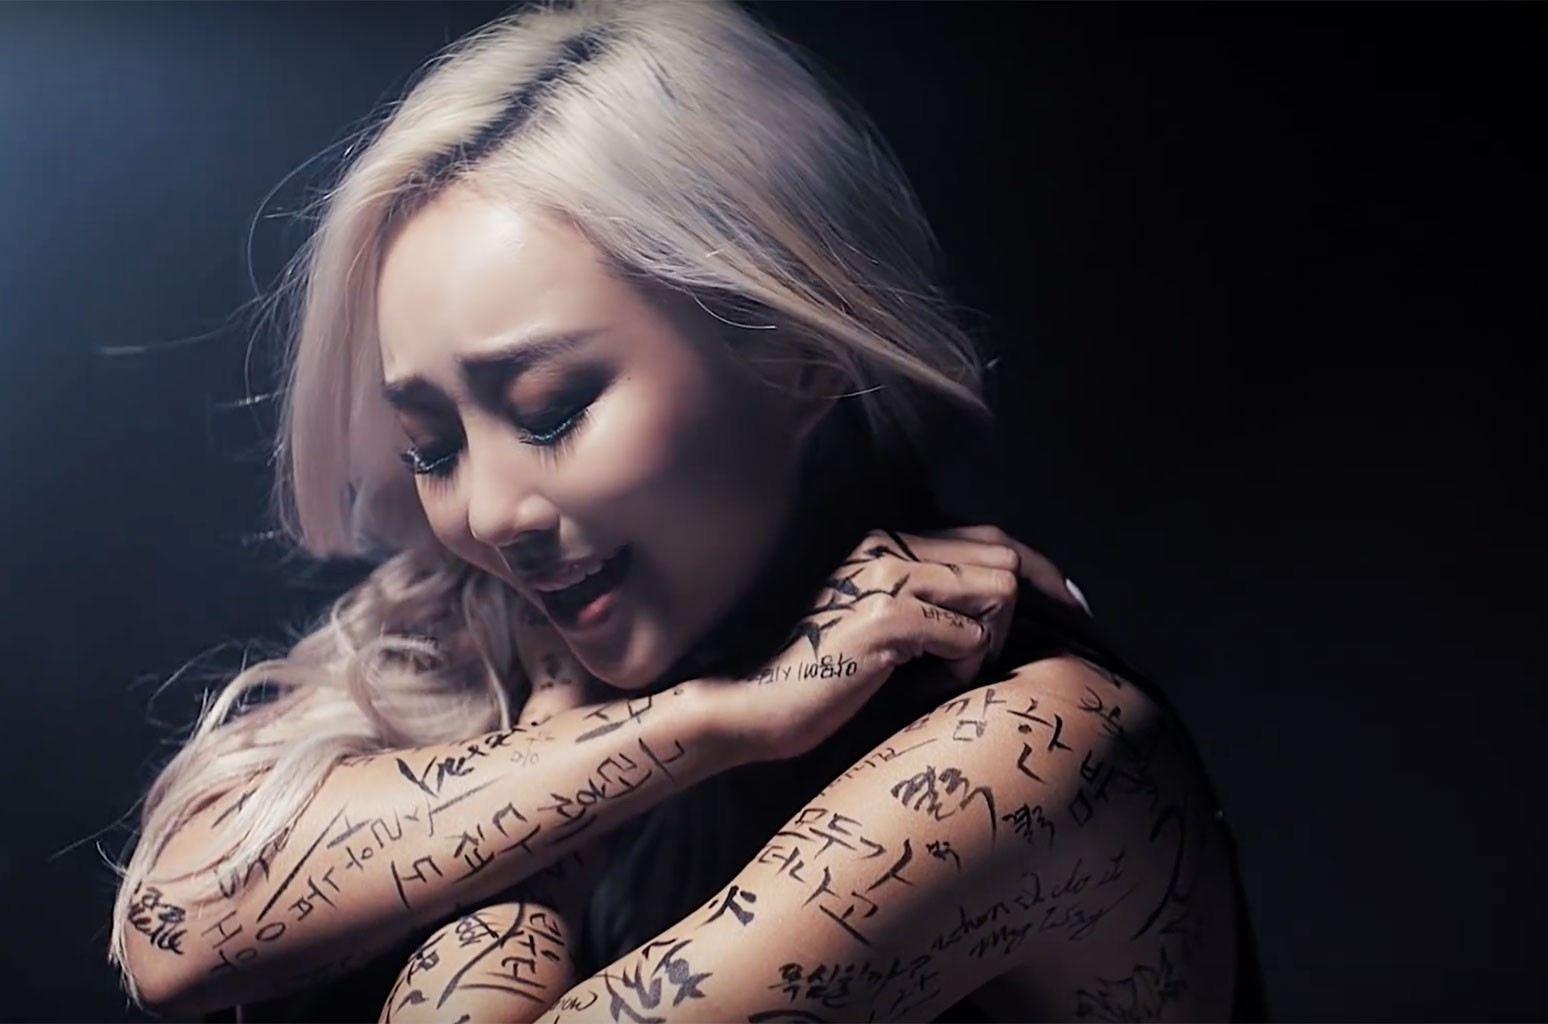 Hyolyn Insists You Know Better In Intimate New Video Watch Billboard